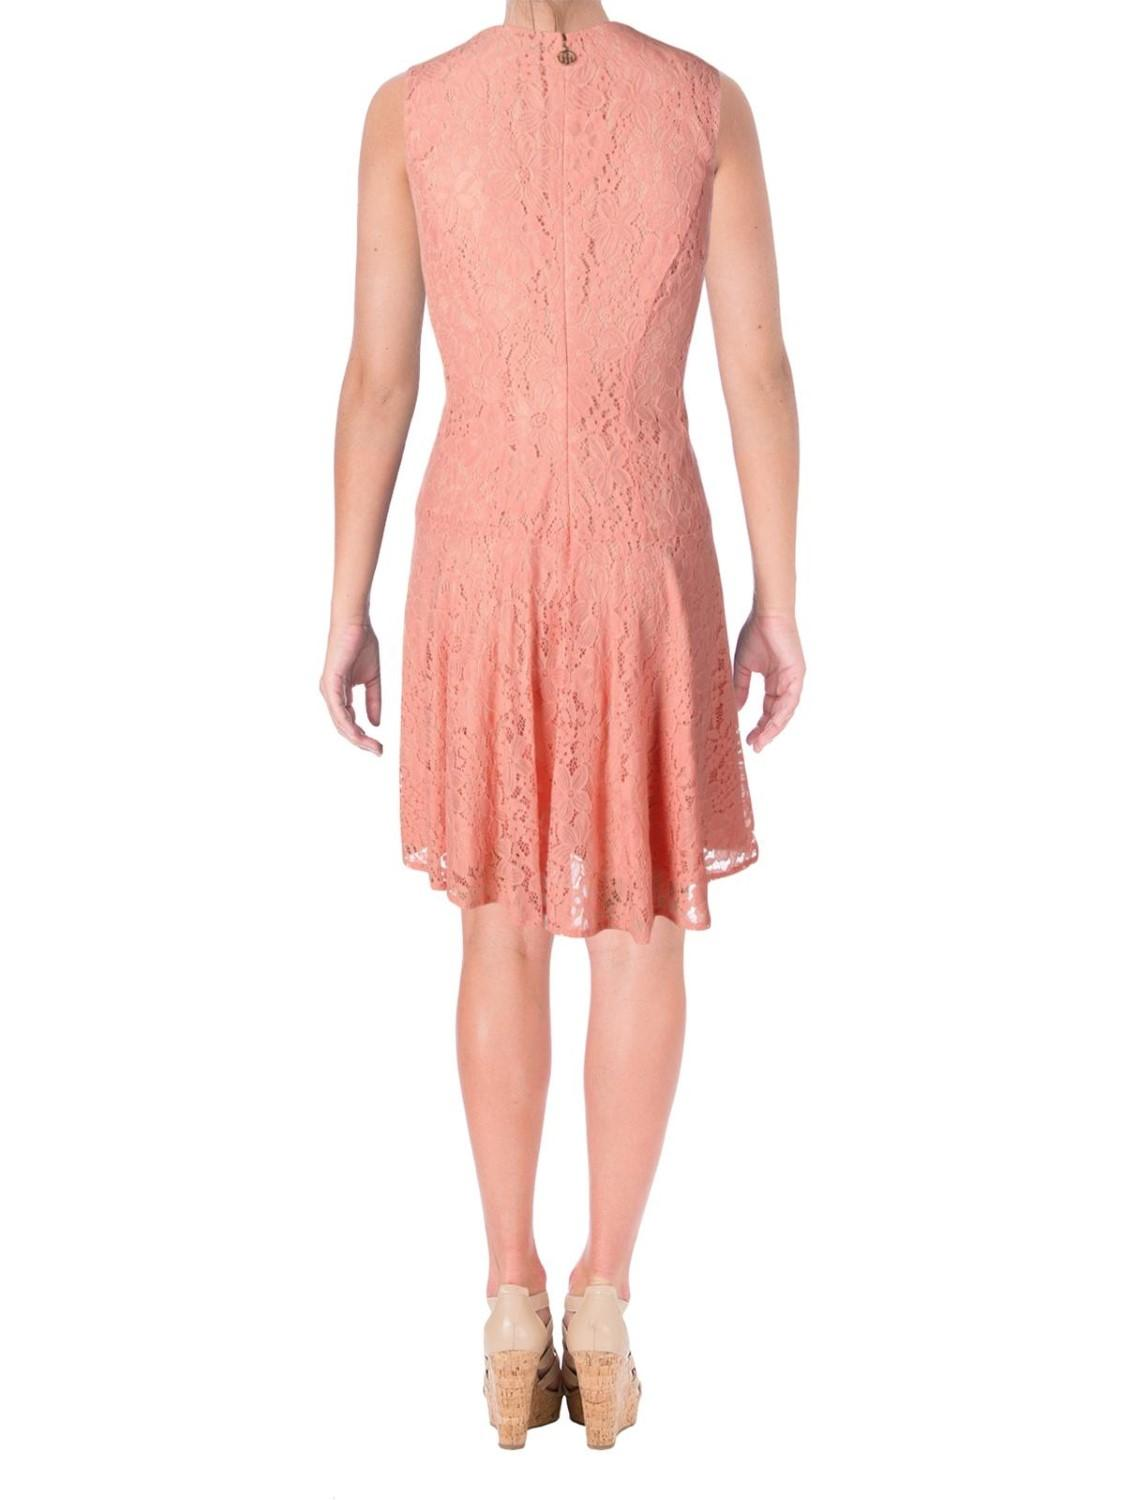 6a71d490b19 Lyst - Tommy Hilfiger Lace Fit & Flare Party Dress in Orange